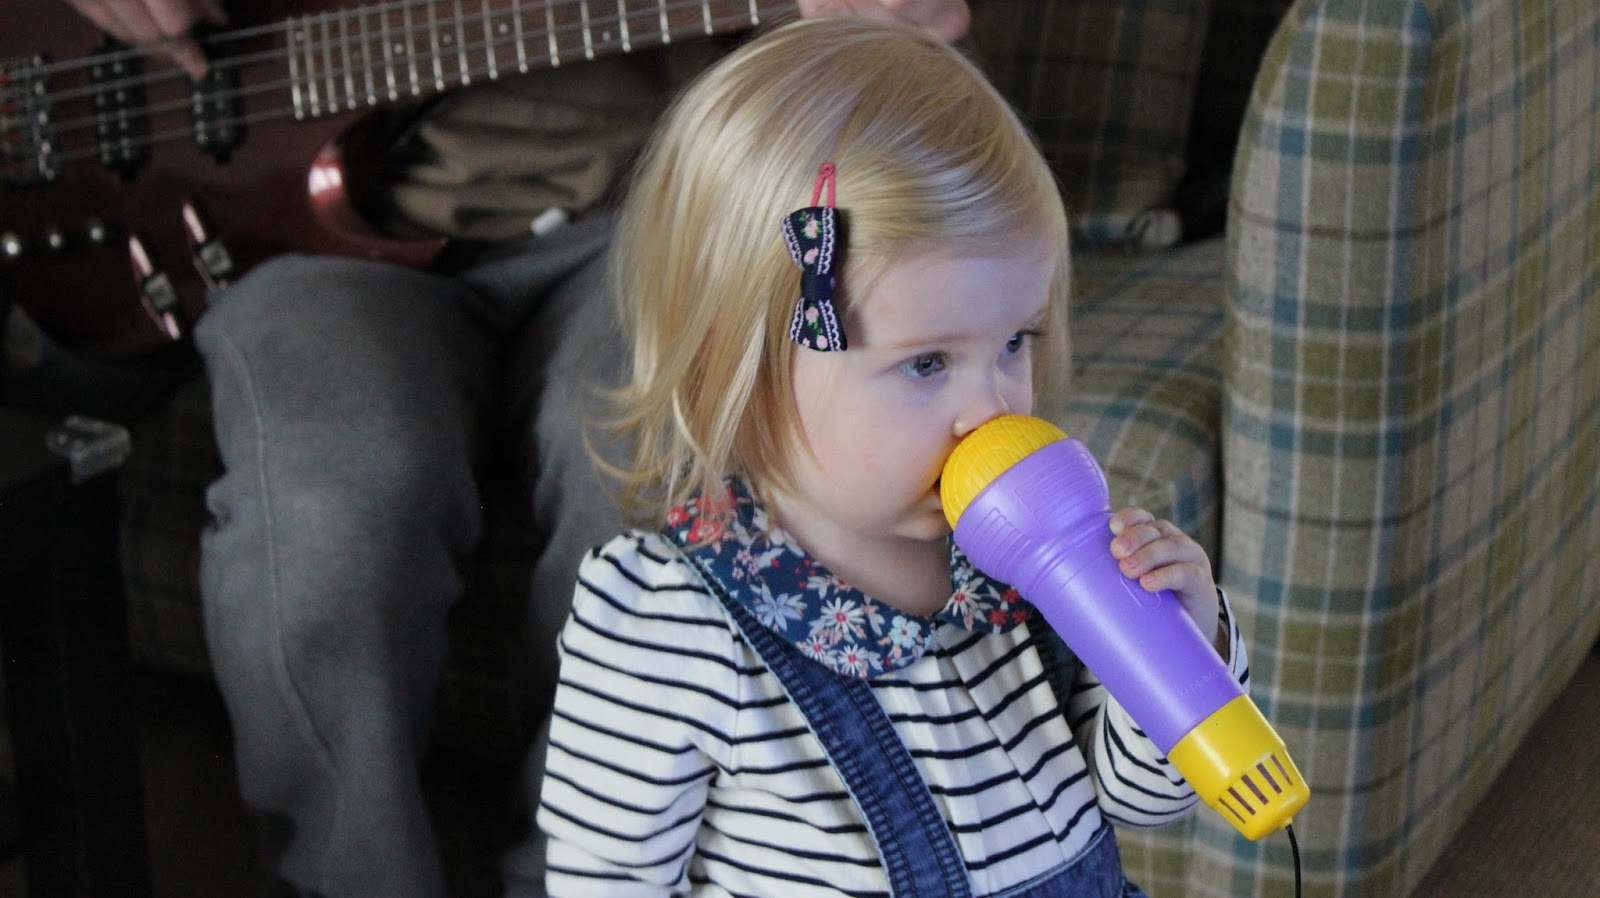 My two year old stood up singing in to a toy microphone. my husband is sat on the sofa behind her playing his bass guitar.